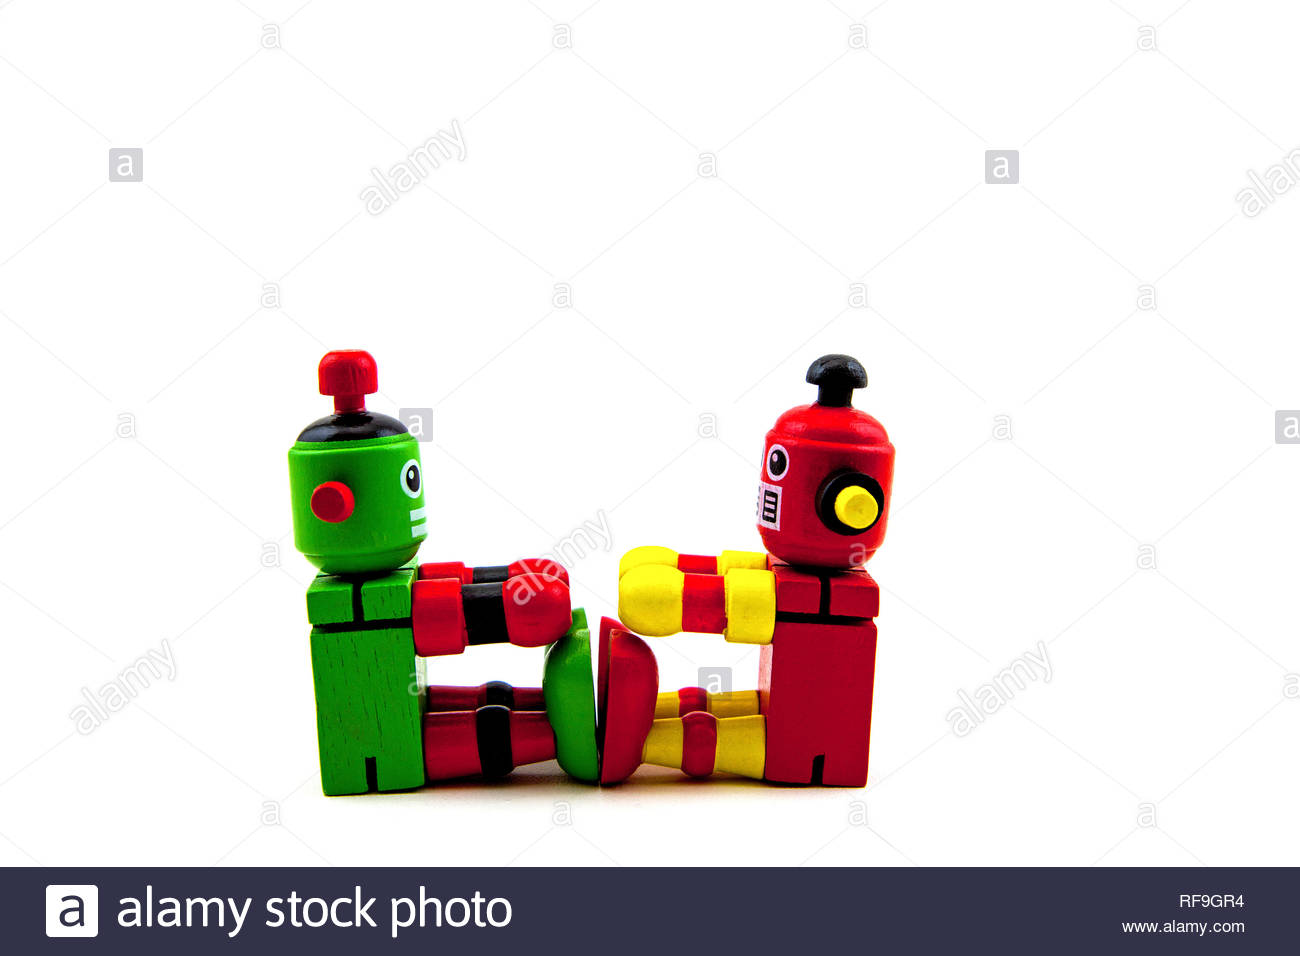 2 wooden toy robots, red/yellow & green/red, sitting facing each other with feet touching. Concepts exercising, communication. Copy space on white - Stock Image